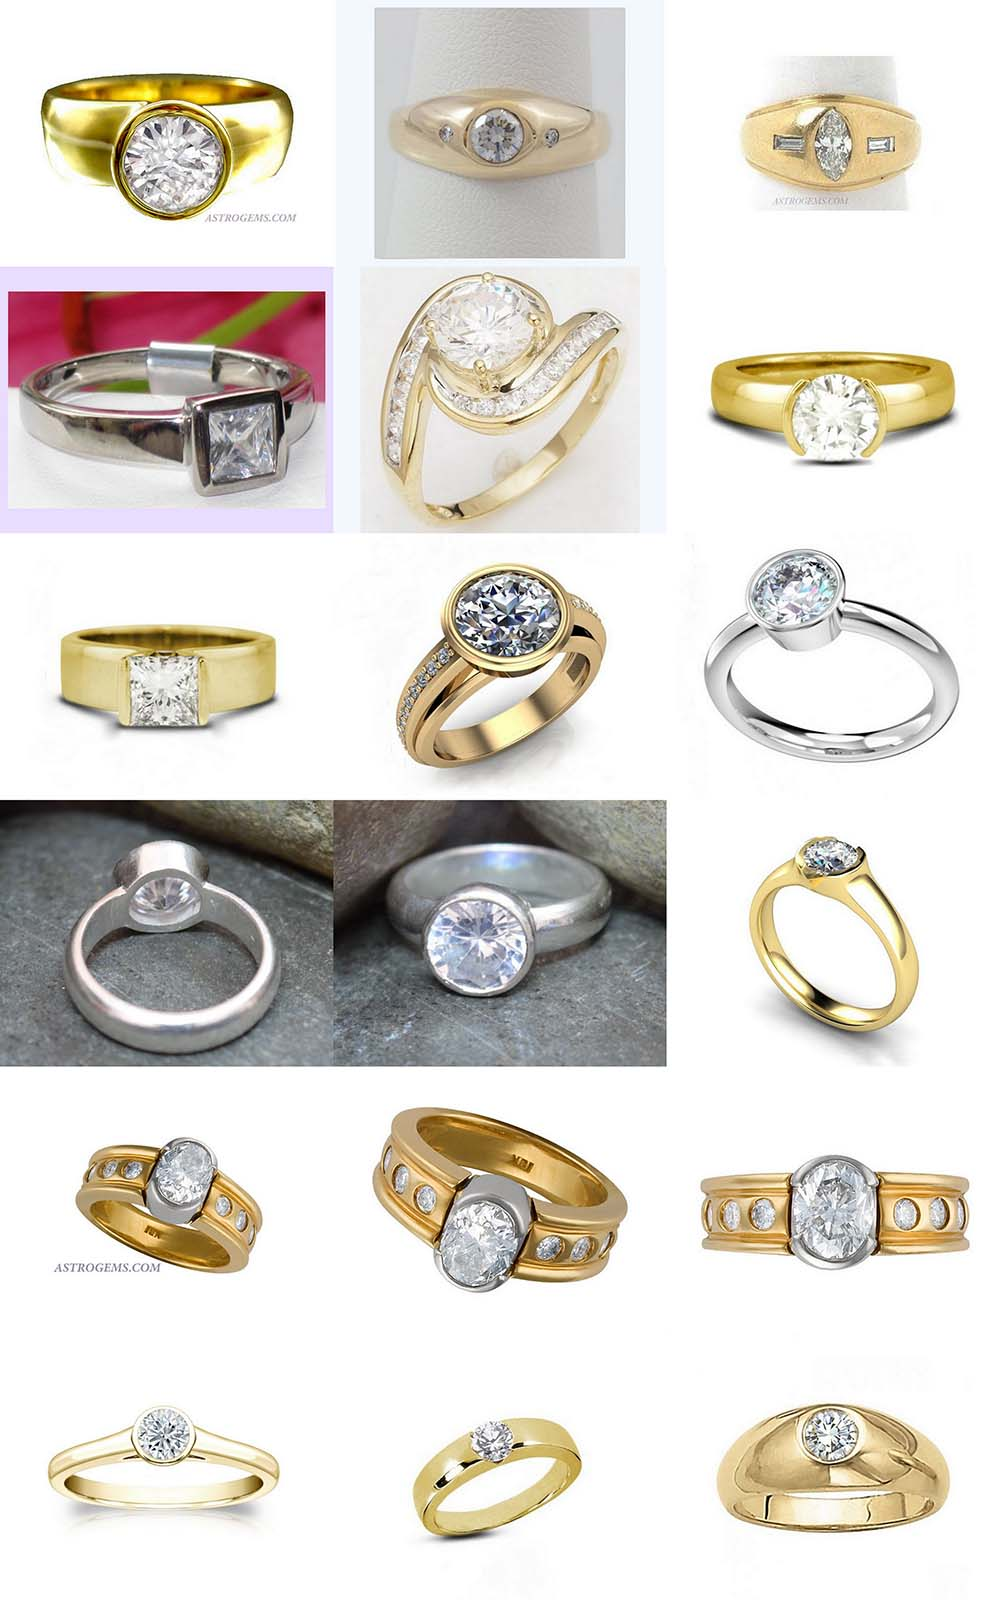 Astrogems can make jyotish astrological diamond rings in any style.